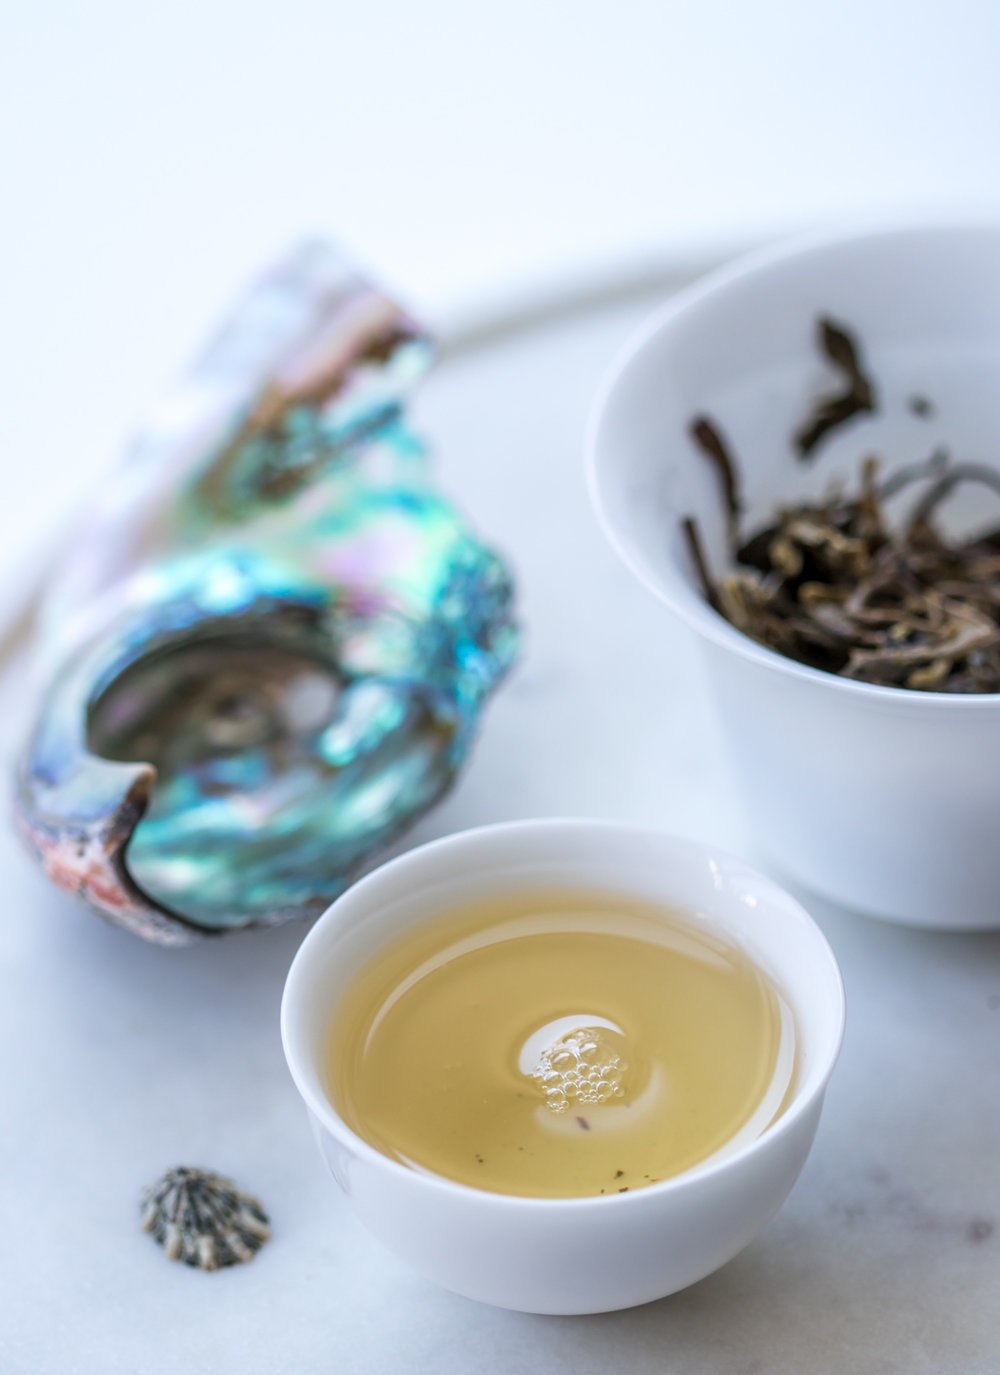 Year of the Dog 2018 Yiwu Raw Puer